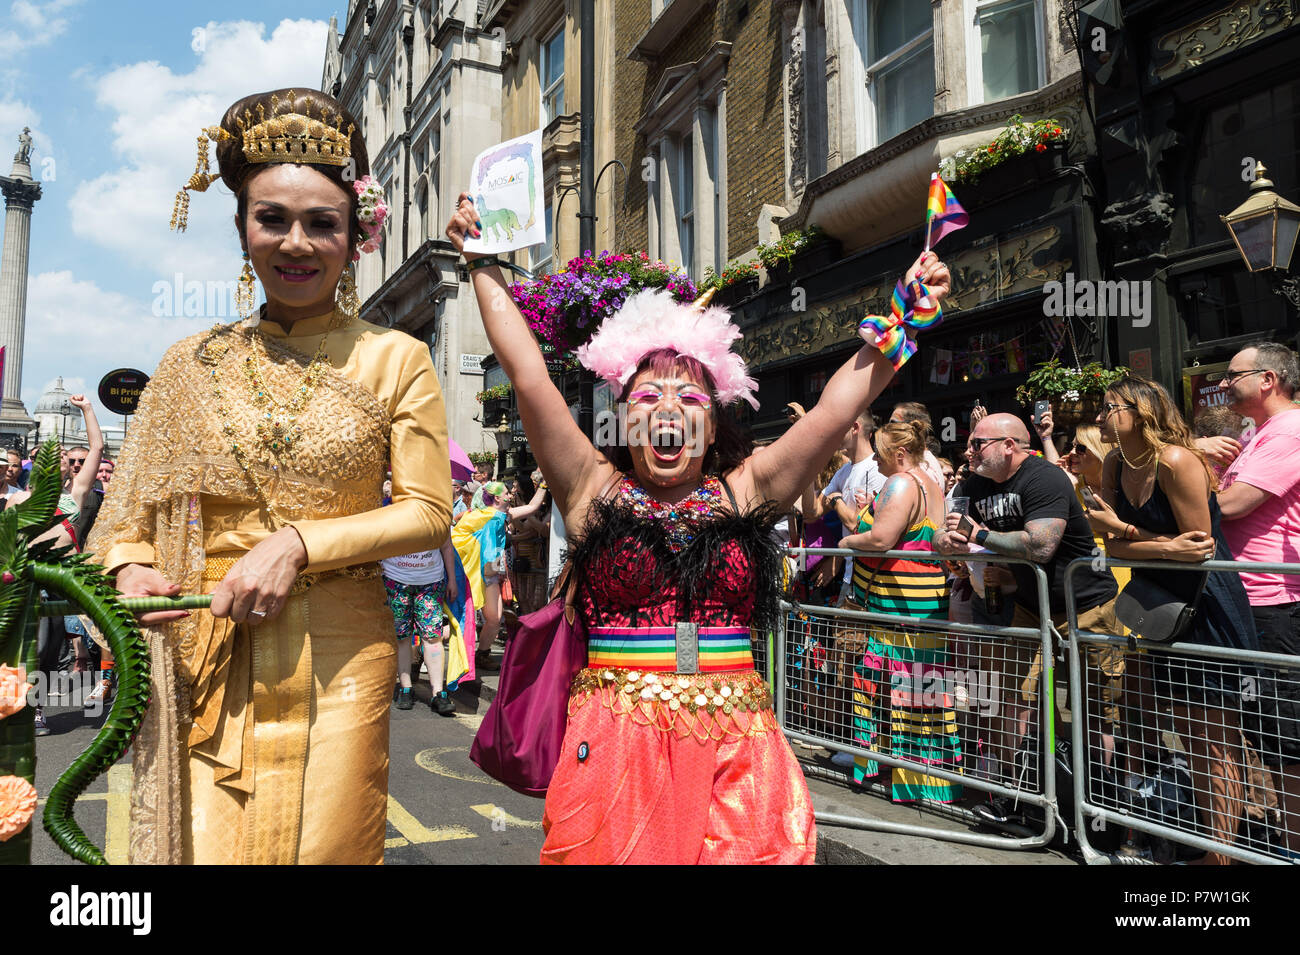 London, UK. 7th July, 2018. Revellers take part in the Pride in London parade. The annual festival attracts hundreds of thousands of people to the streets of the British capital to celebrate the LGBT+ community. Credit: Wiktor Szymanowicz/Alamy Live News Stock Photo